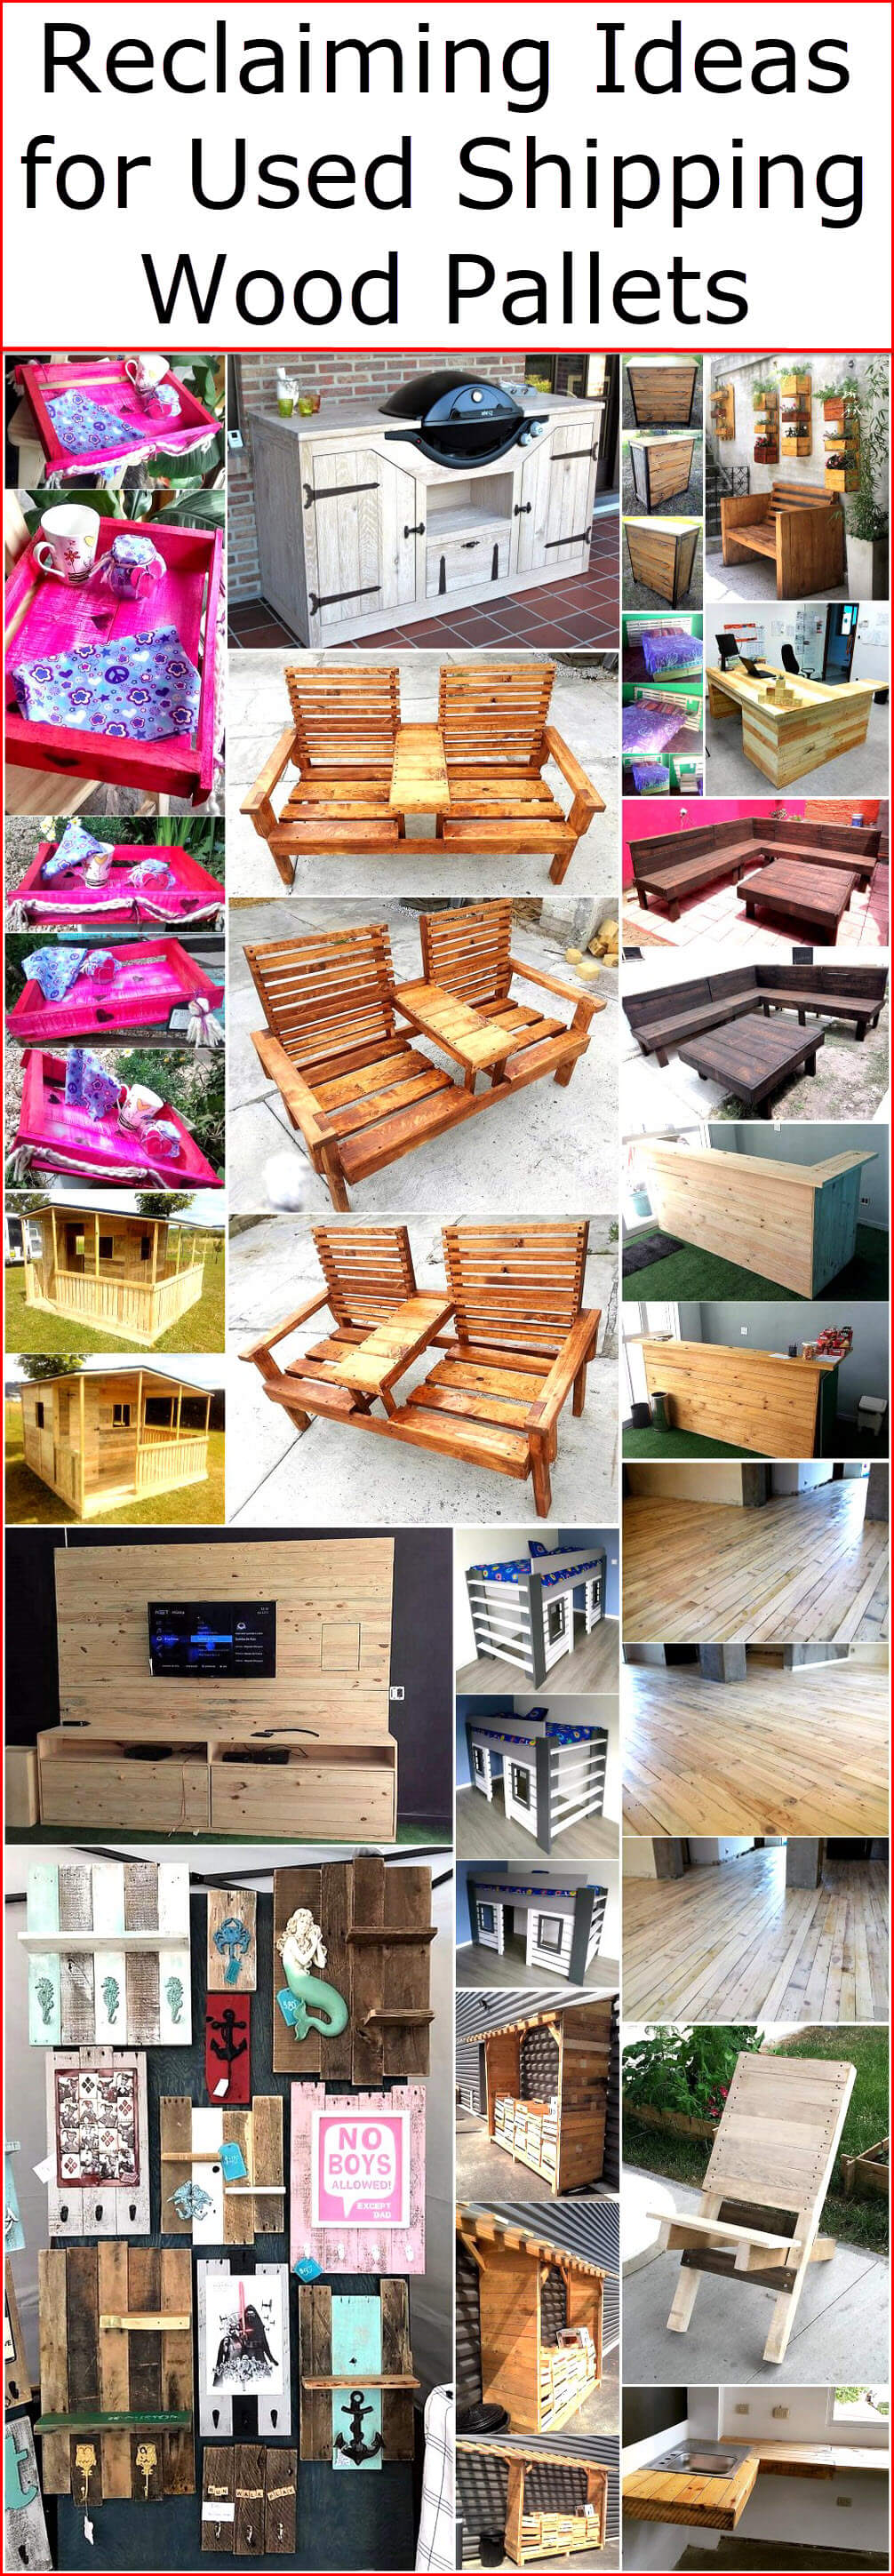 shipping pallet furniture ideas. Reclaiming Ideas For Used Shipping Wood Pallets Pallet Furniture